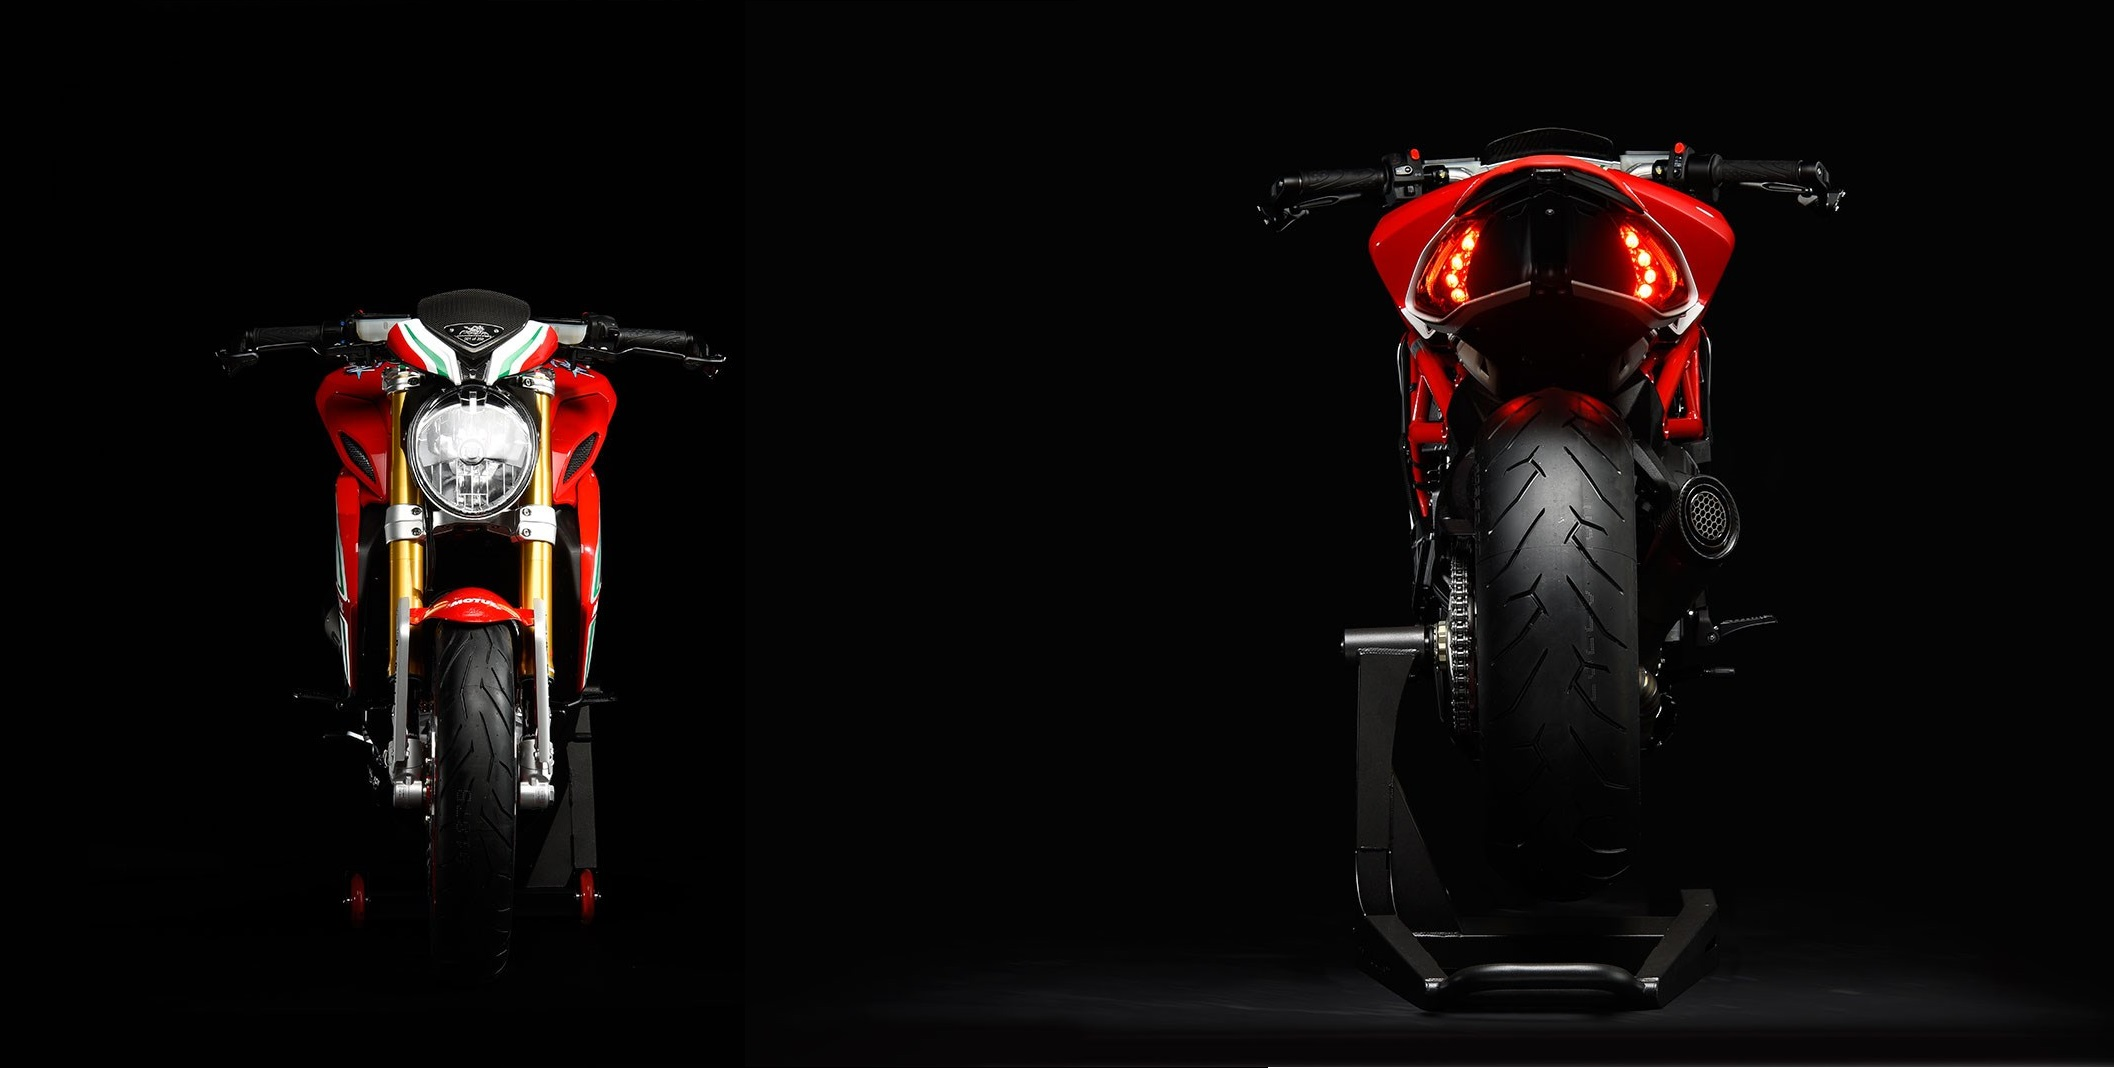 MV Agusta Dragster RC 2018 Front and rear